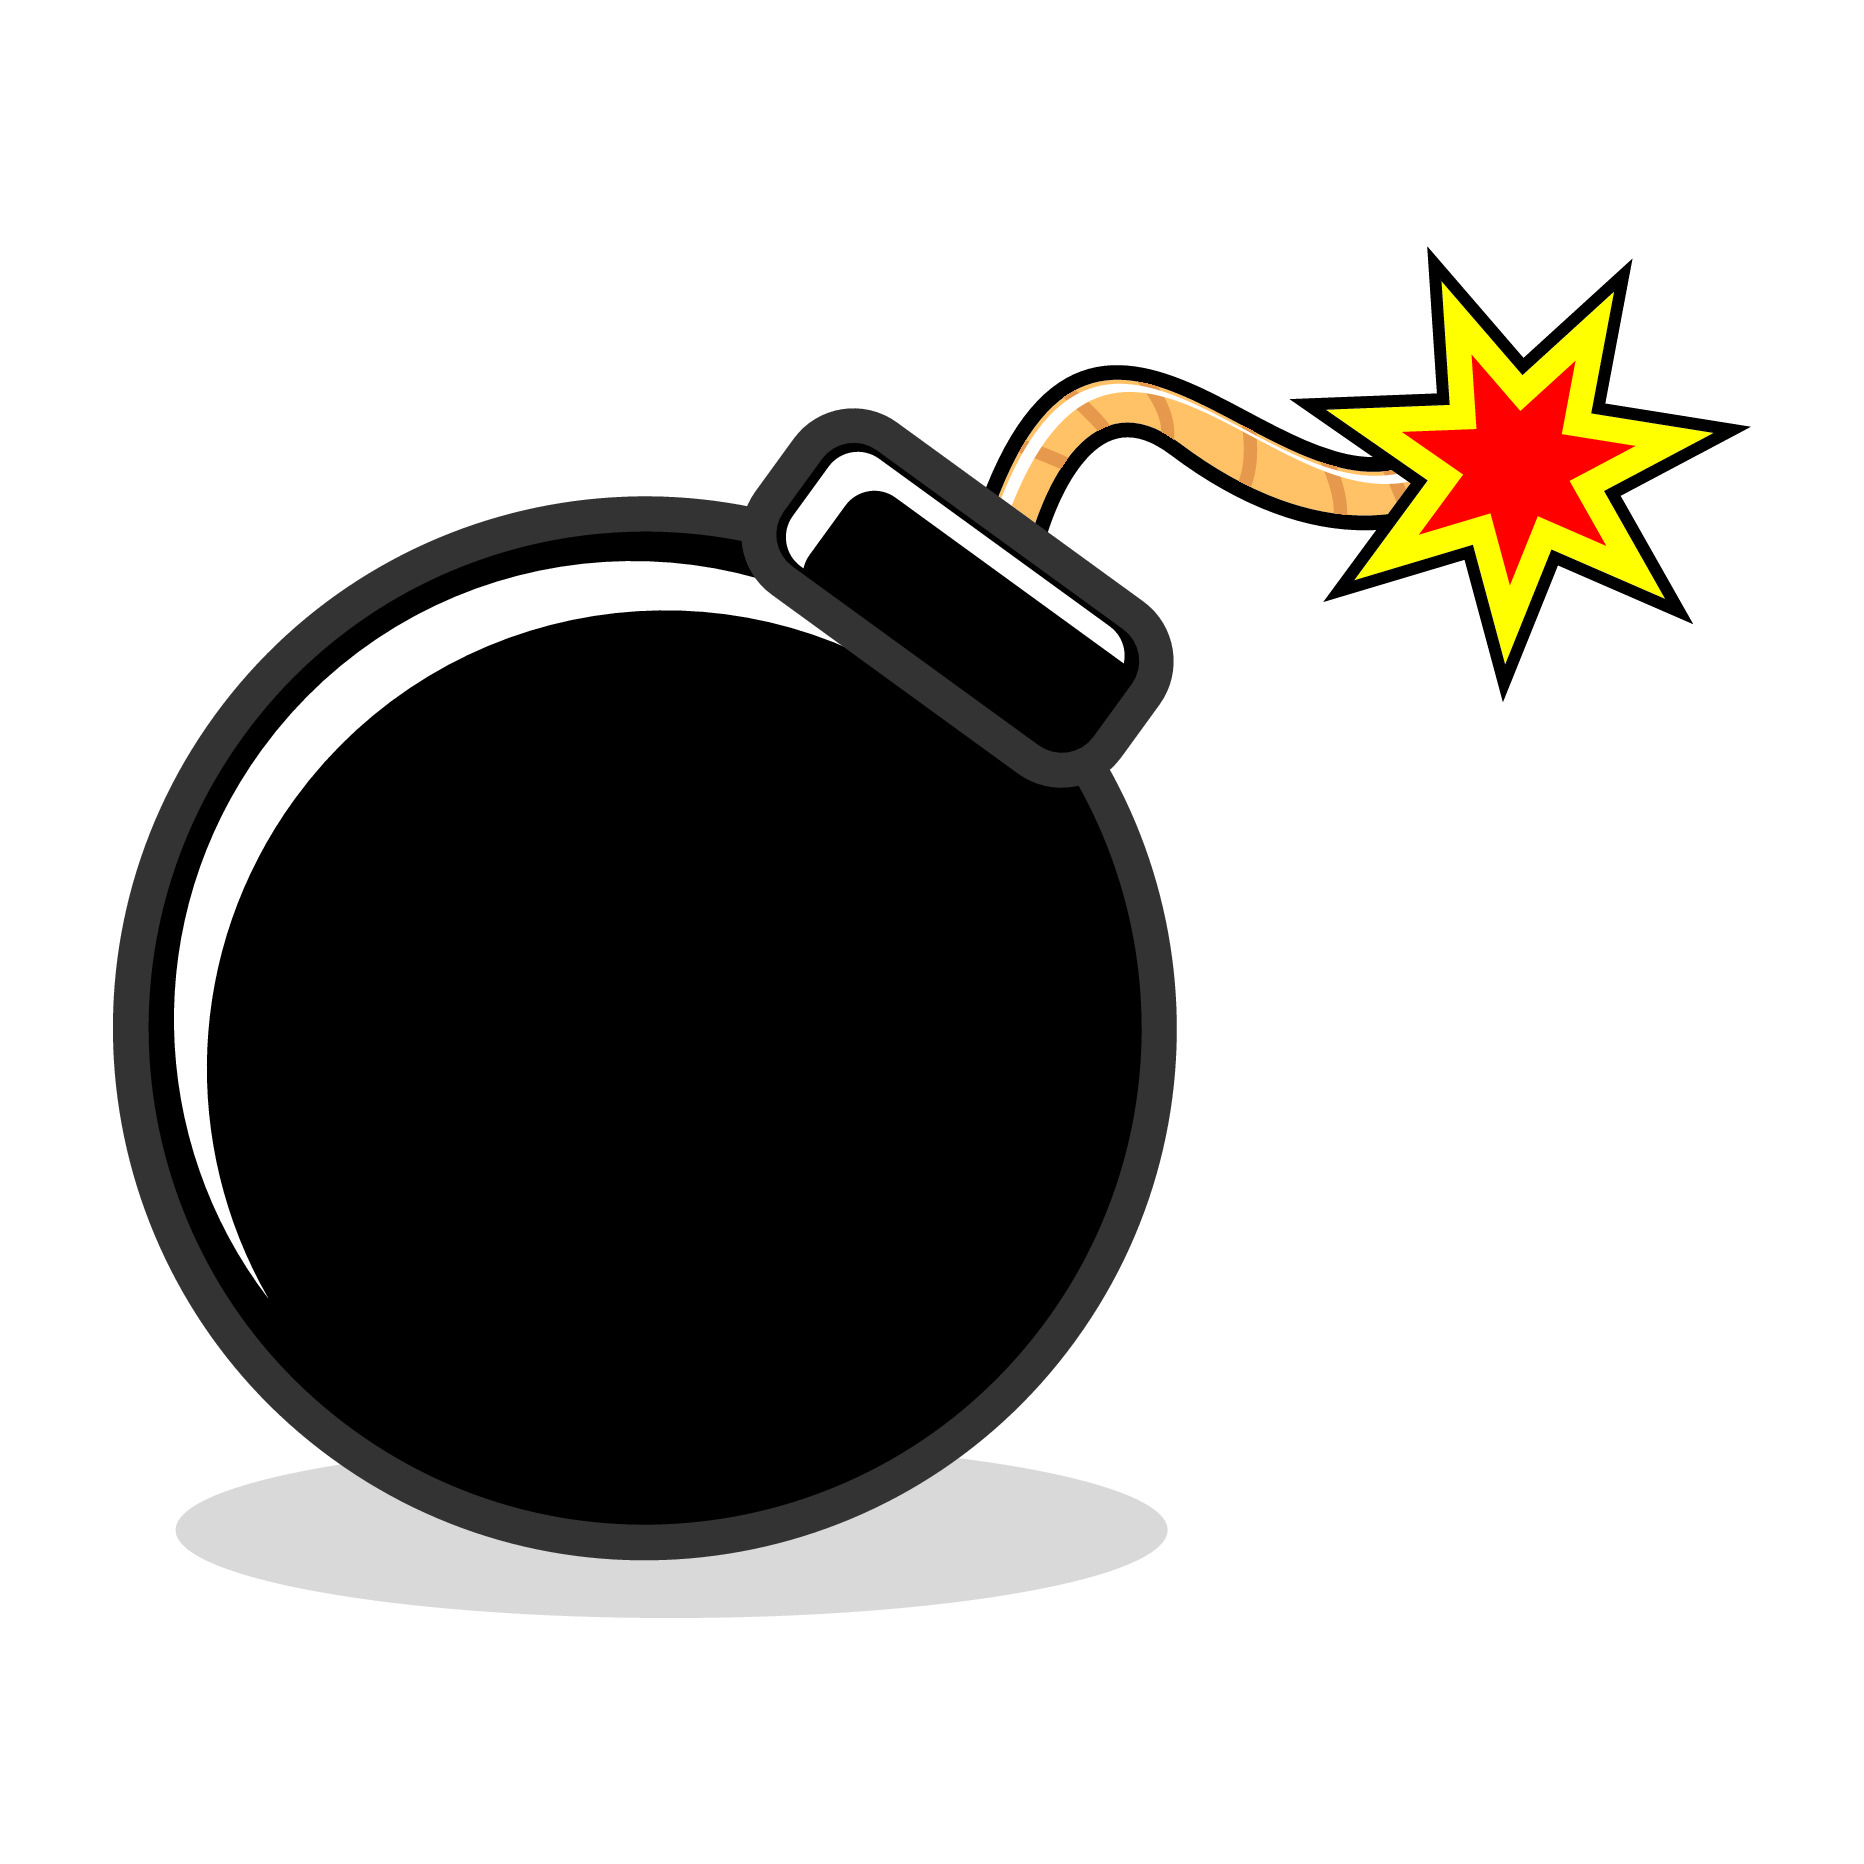 Bomb clipart #10, Download drawings